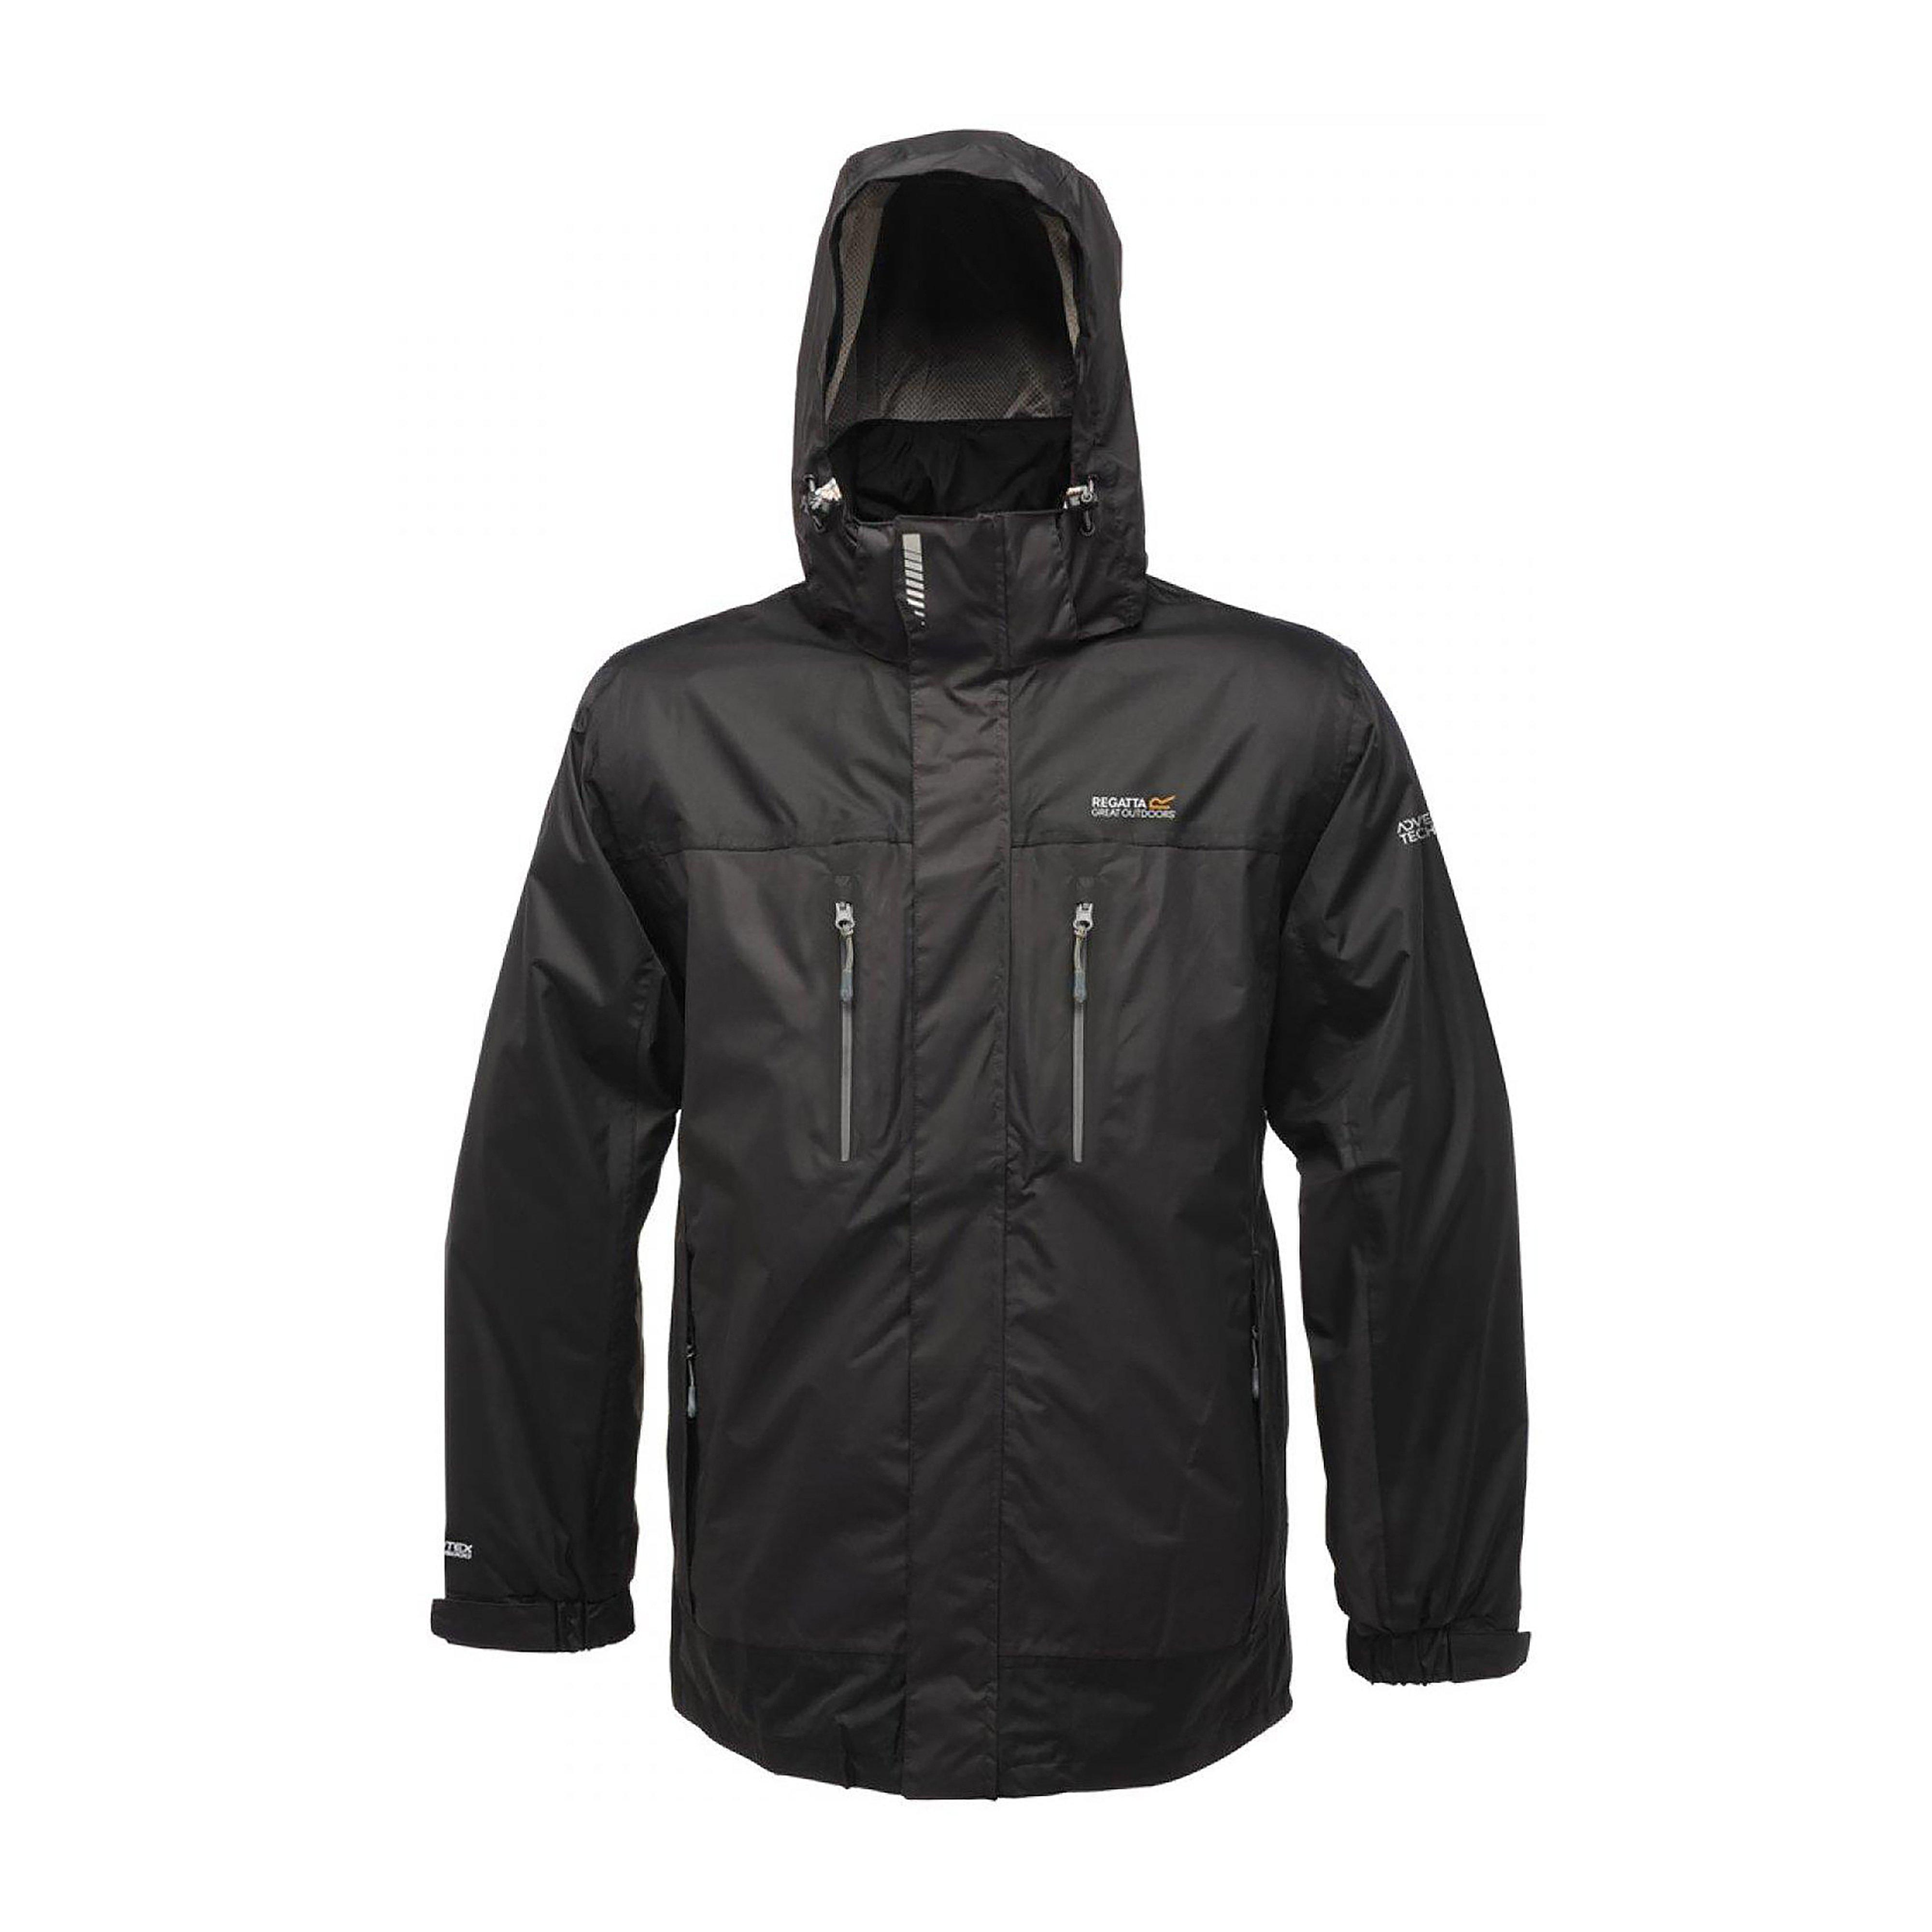 REGATTA | Men's | Men's Clothing | Jackets & Coats | Waterproof ...